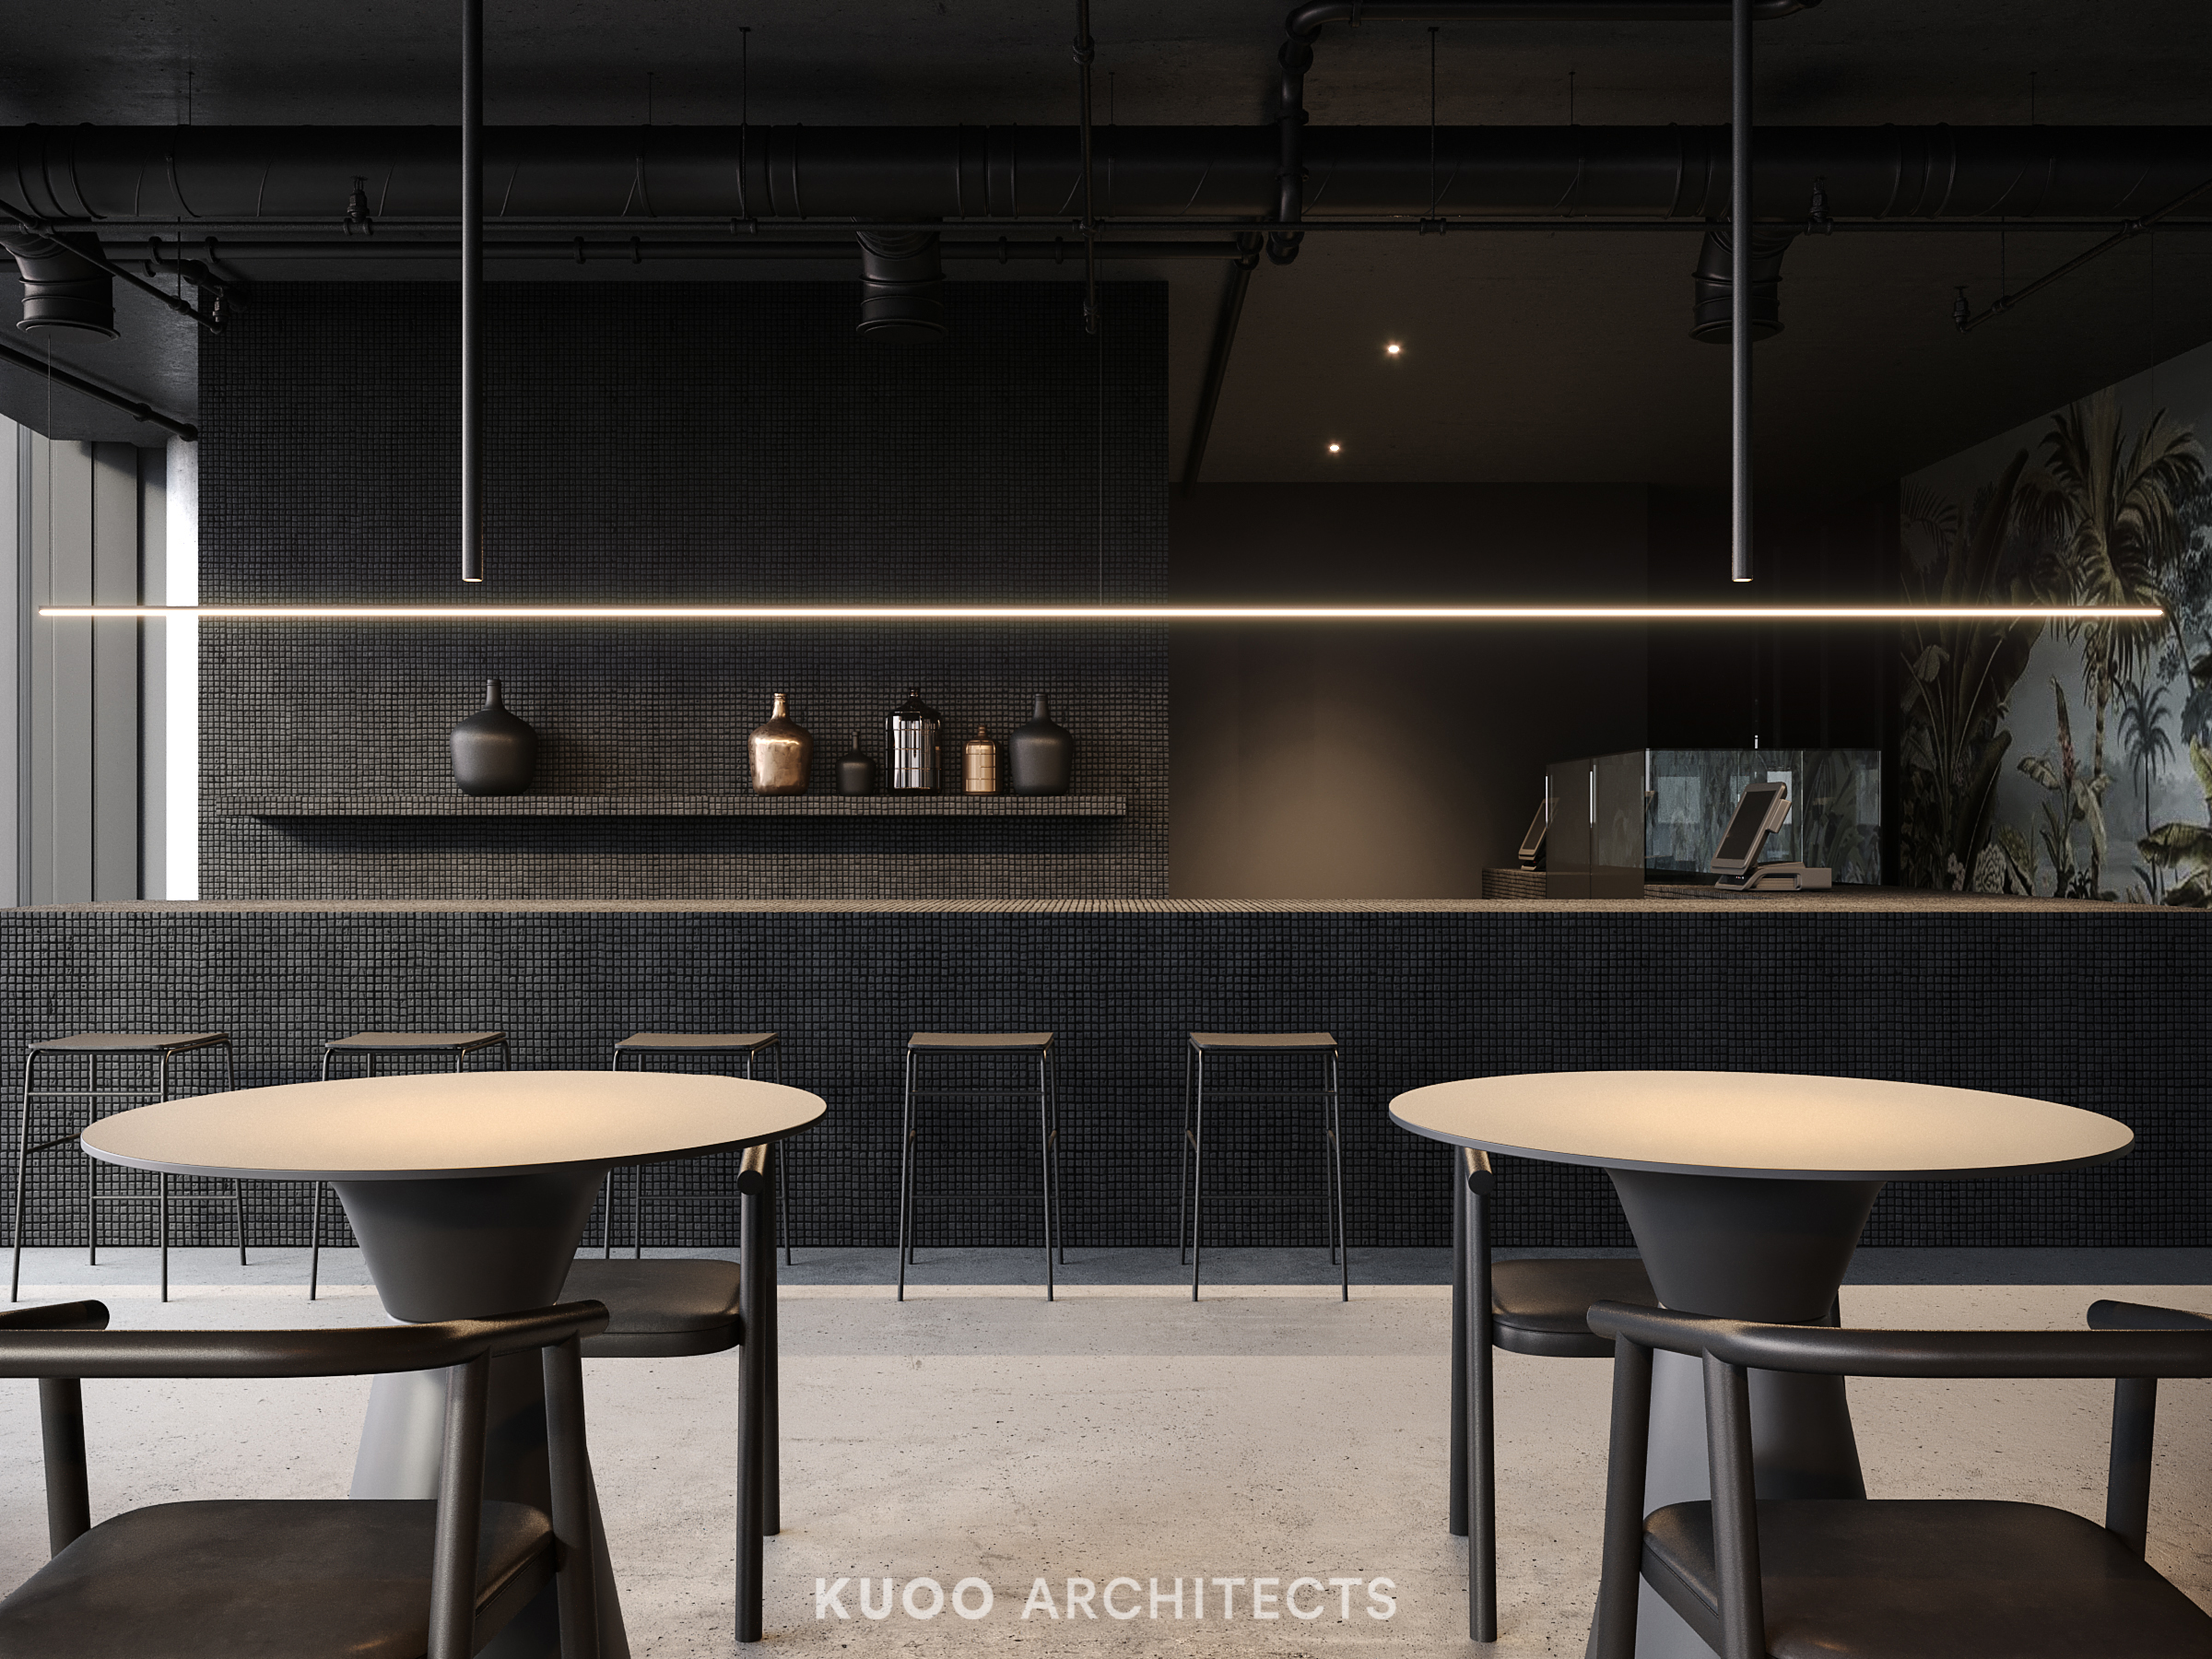 kuoo_architects_mcafe